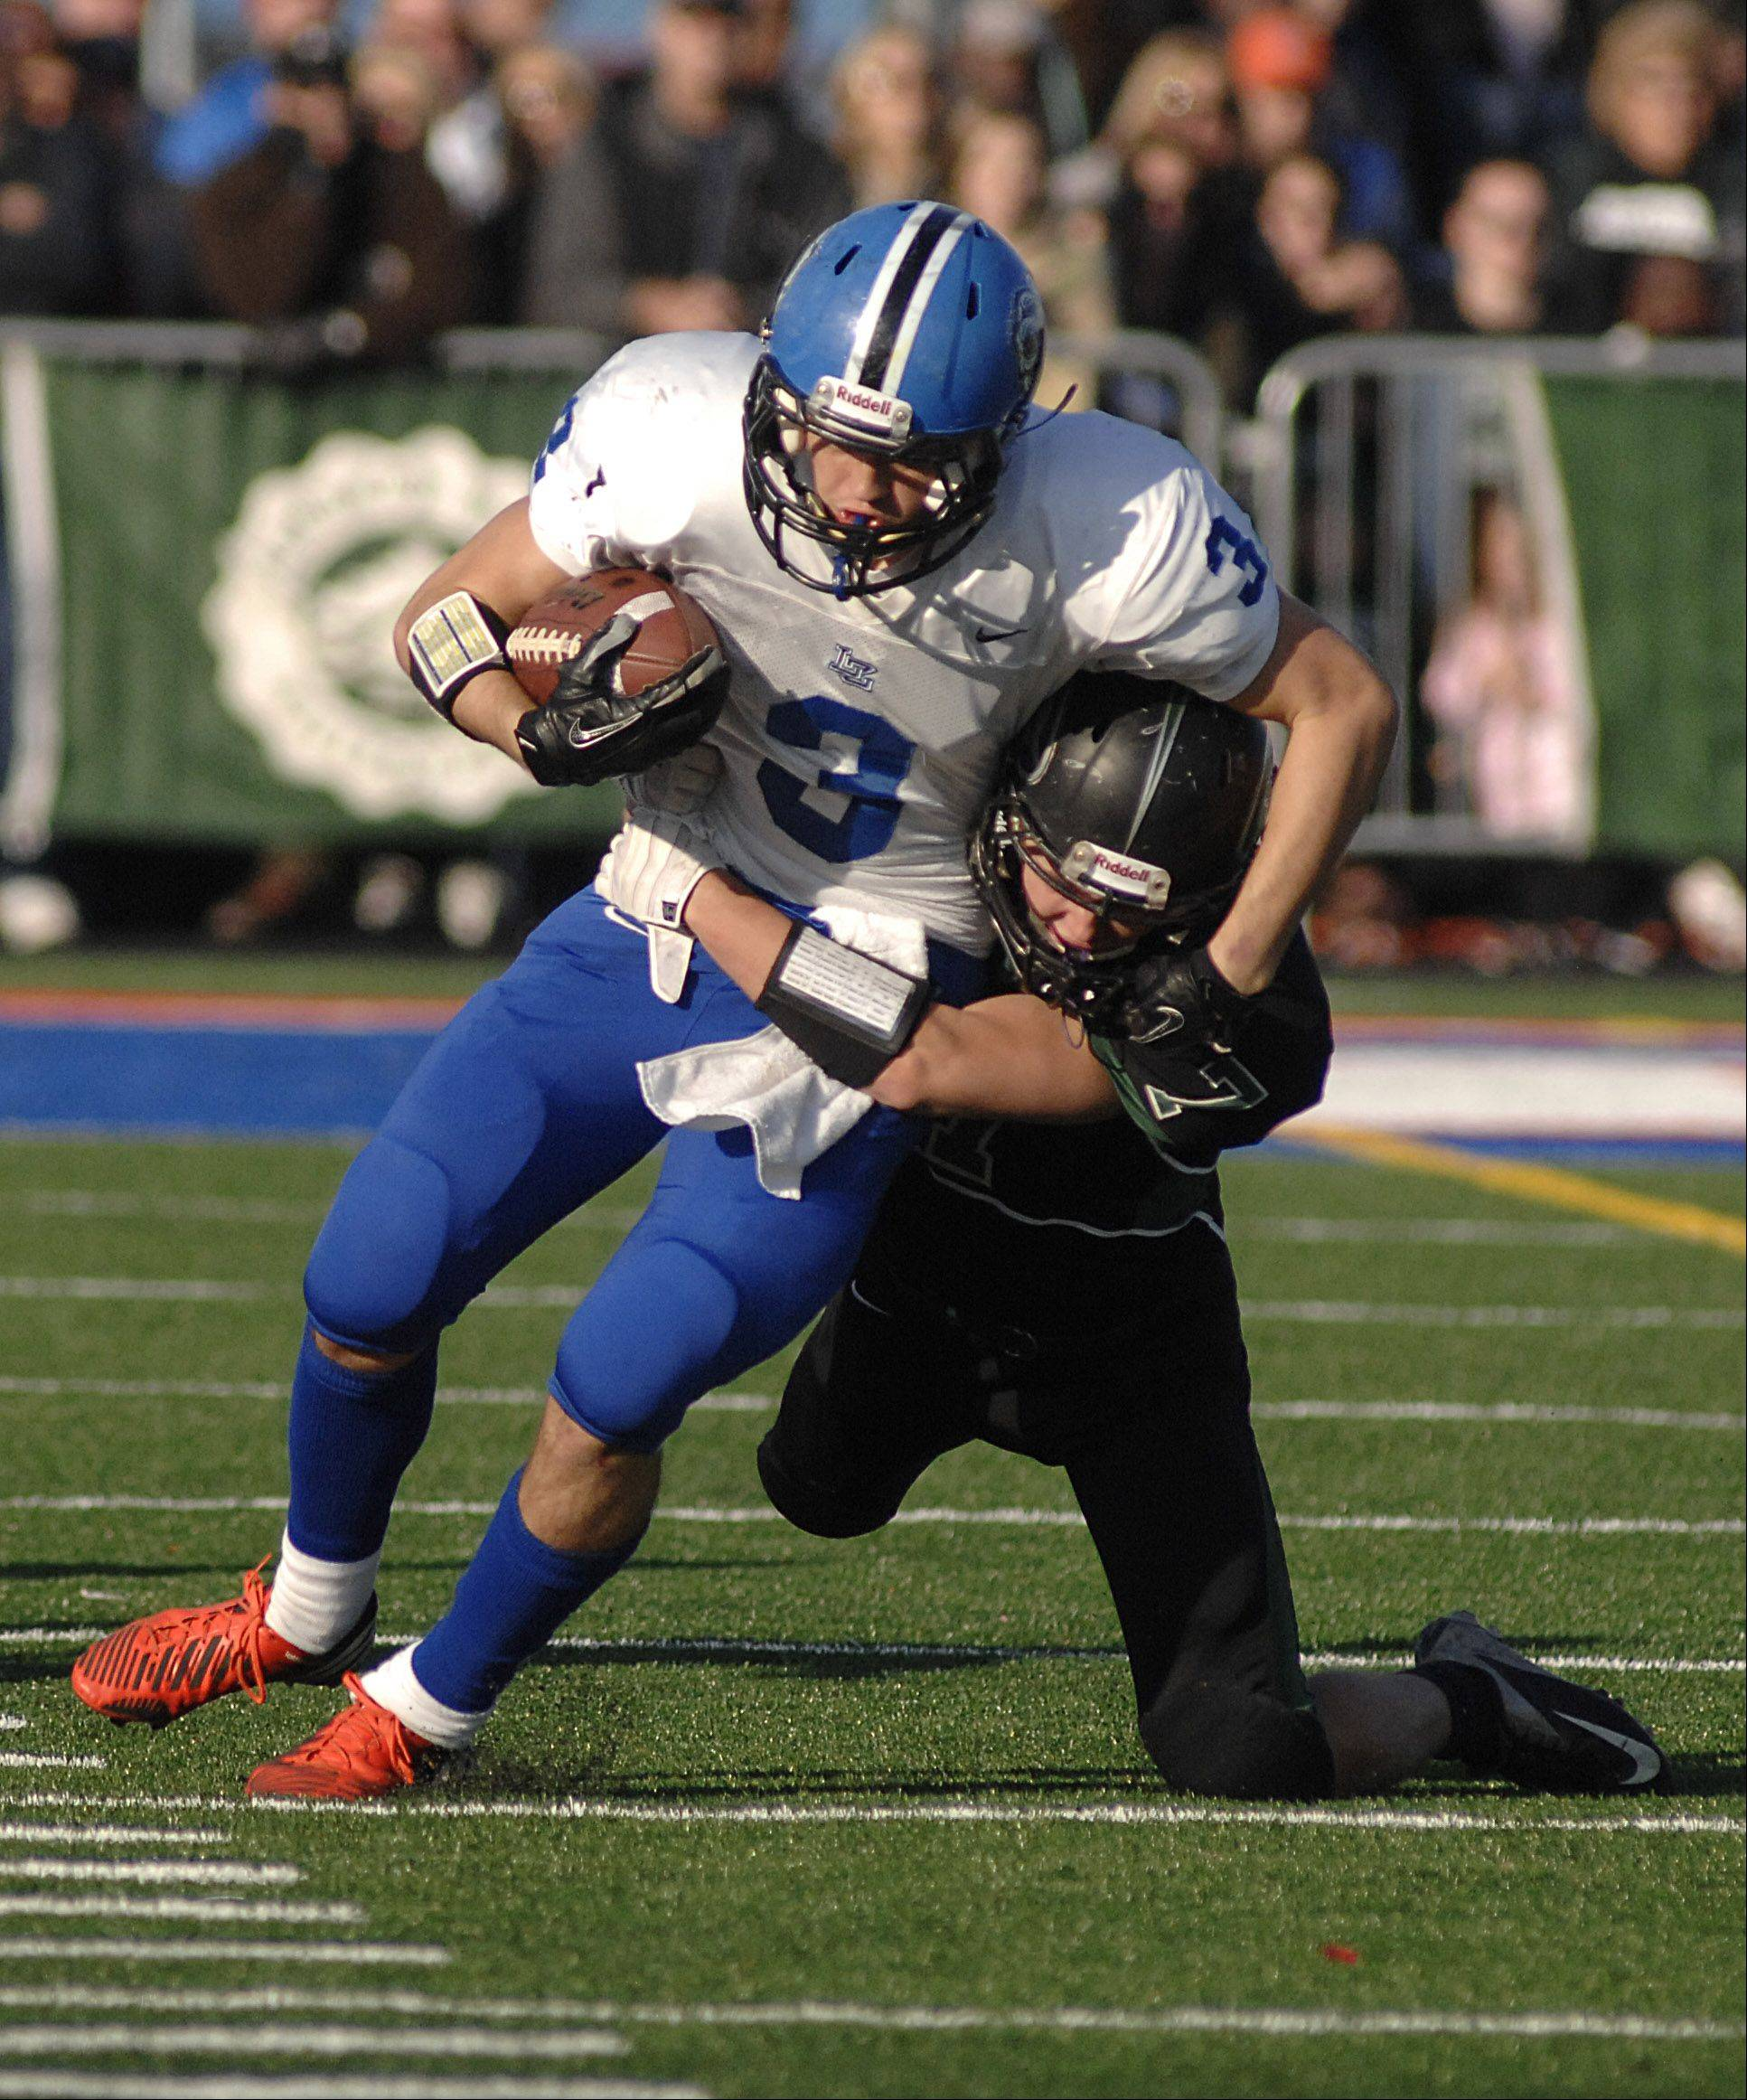 Glenbard West's Charlie Sweeney clamps on to Lake Zurich's Steven Walcott in the second quarter on Saturday, Nov. 17.